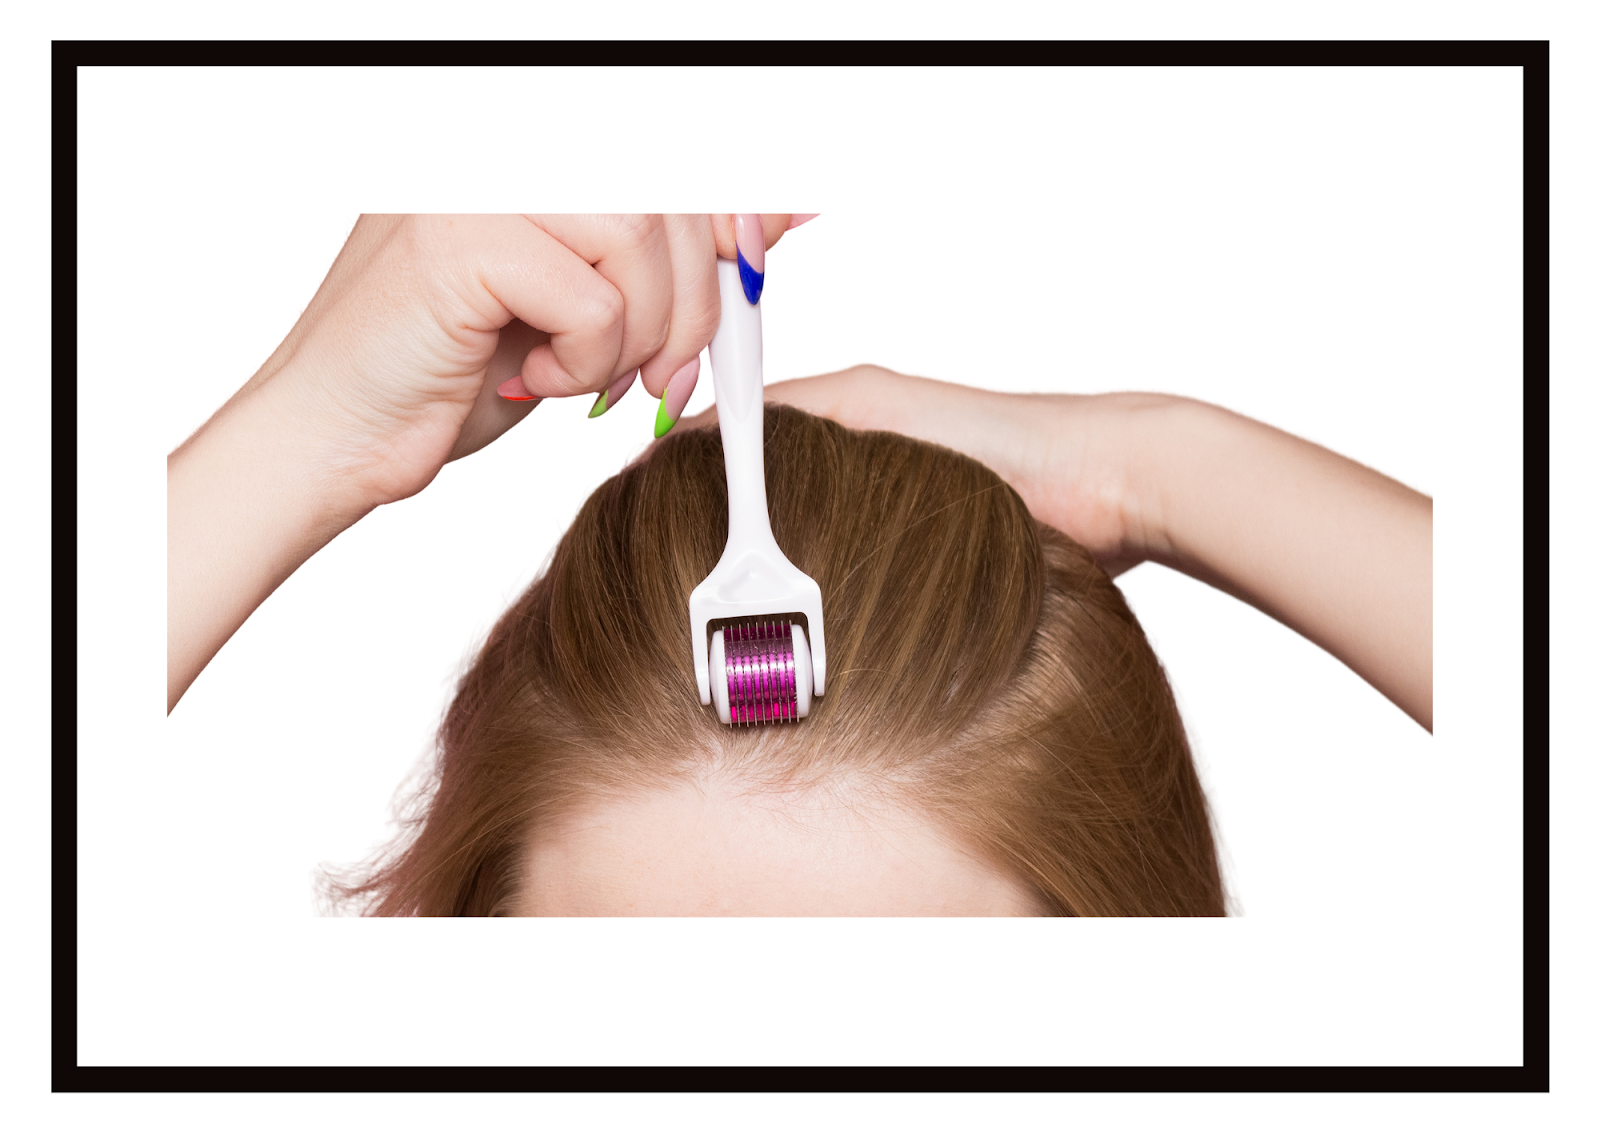 Microneedling to improve hair loss: How Does It Work?